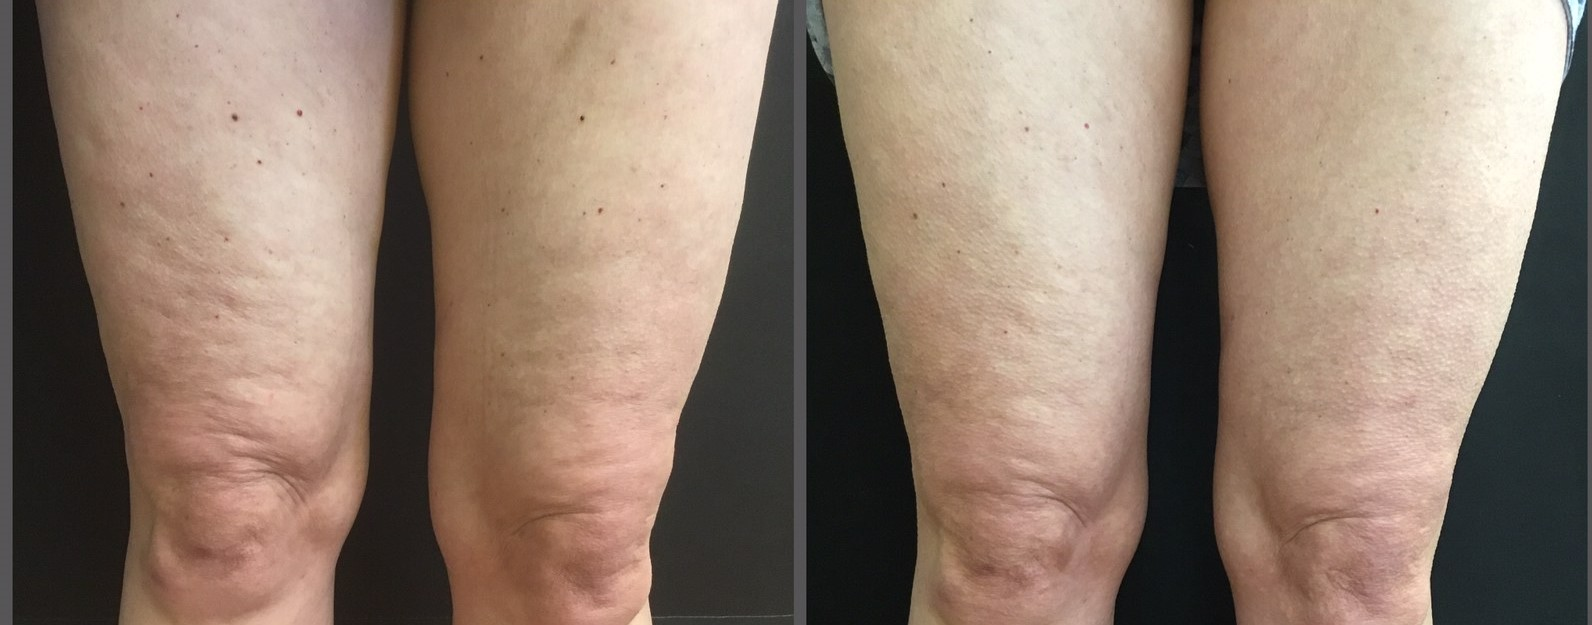 Before and after Sculptra cellulite treatment on the thighs